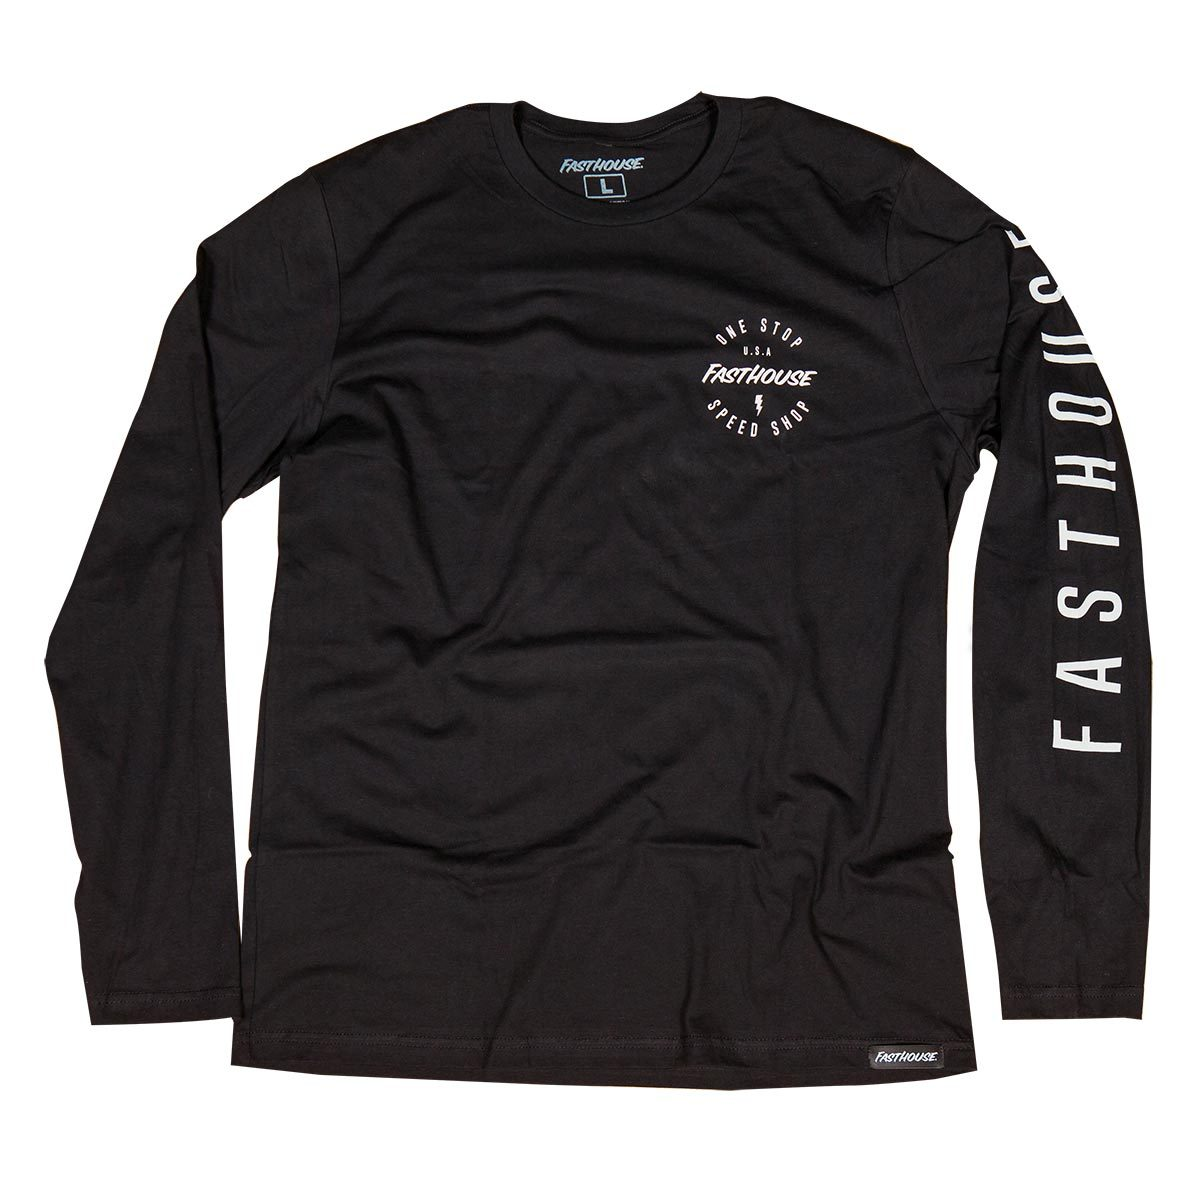 ExtremeZone Cycles Polera Fasthouse Simple LS black XL